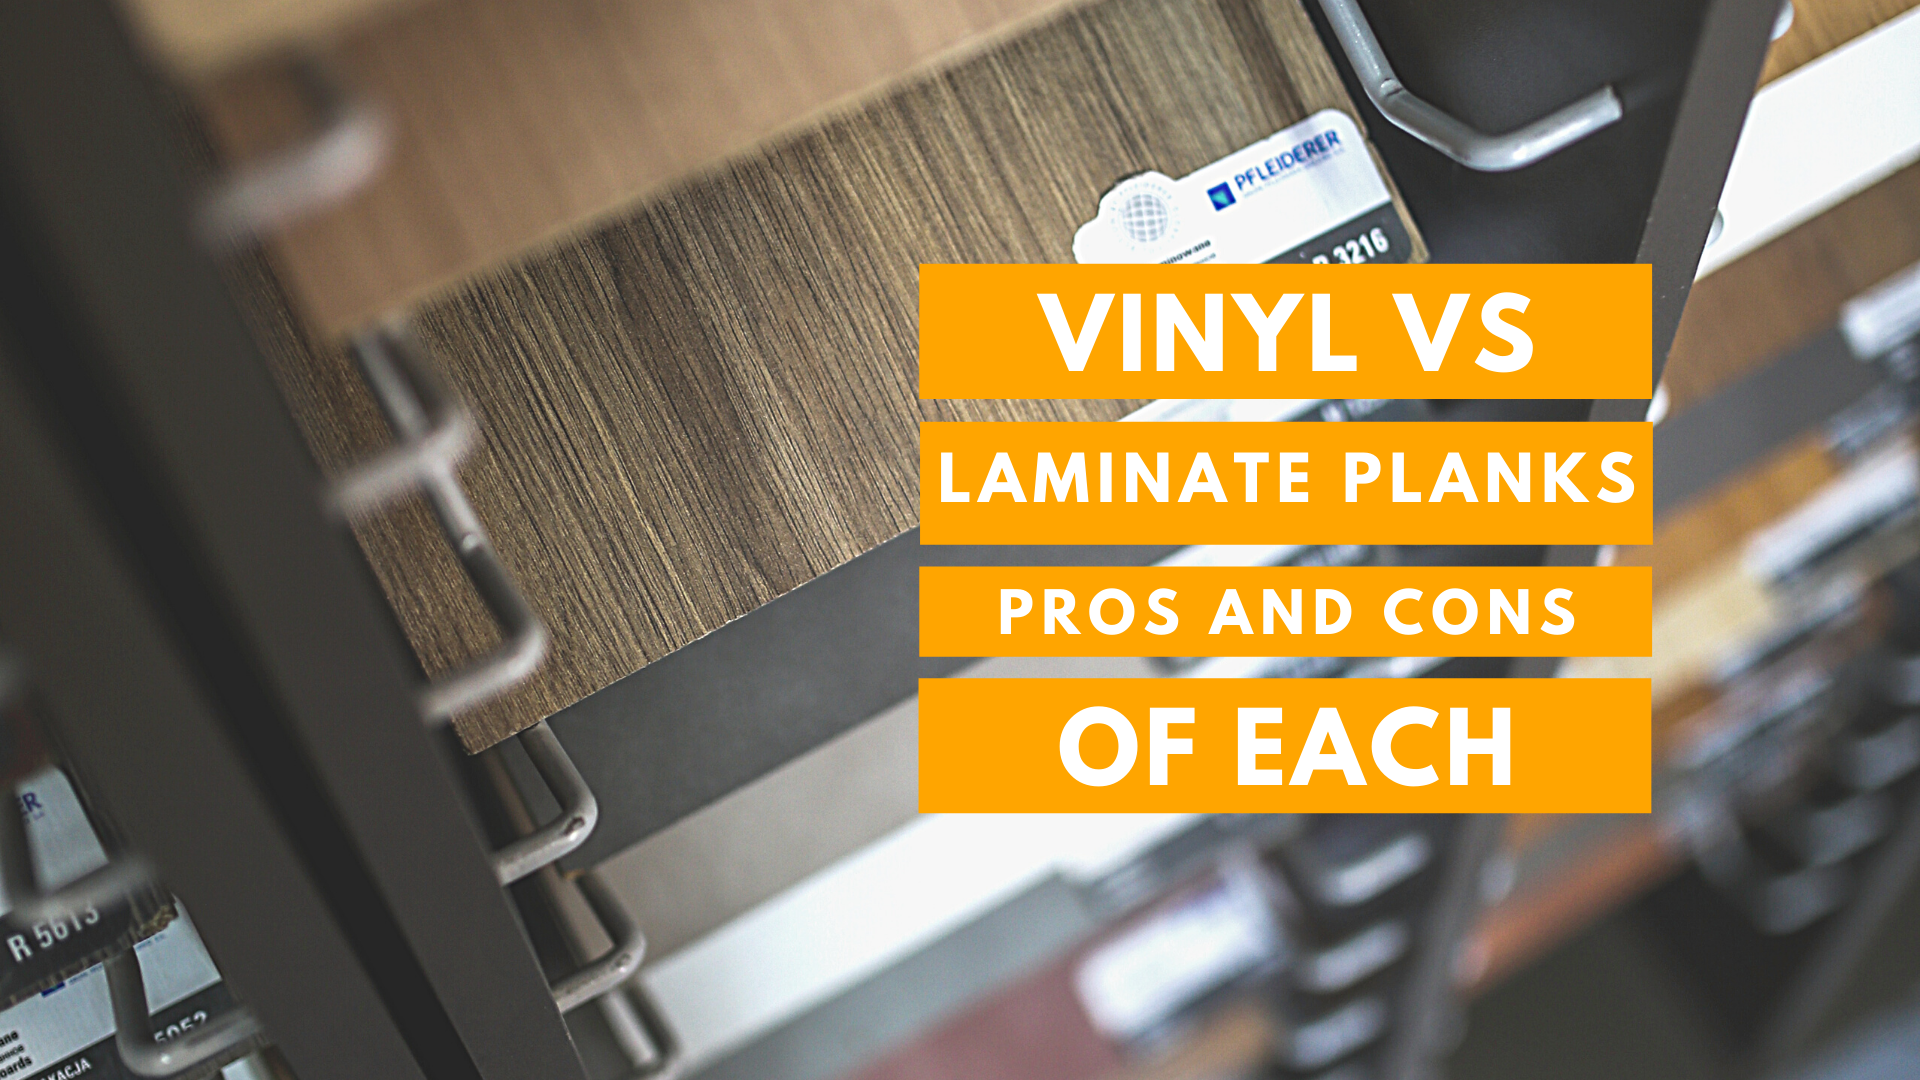 Vinyl VS Laminate Planks - Pros and Cons of Each